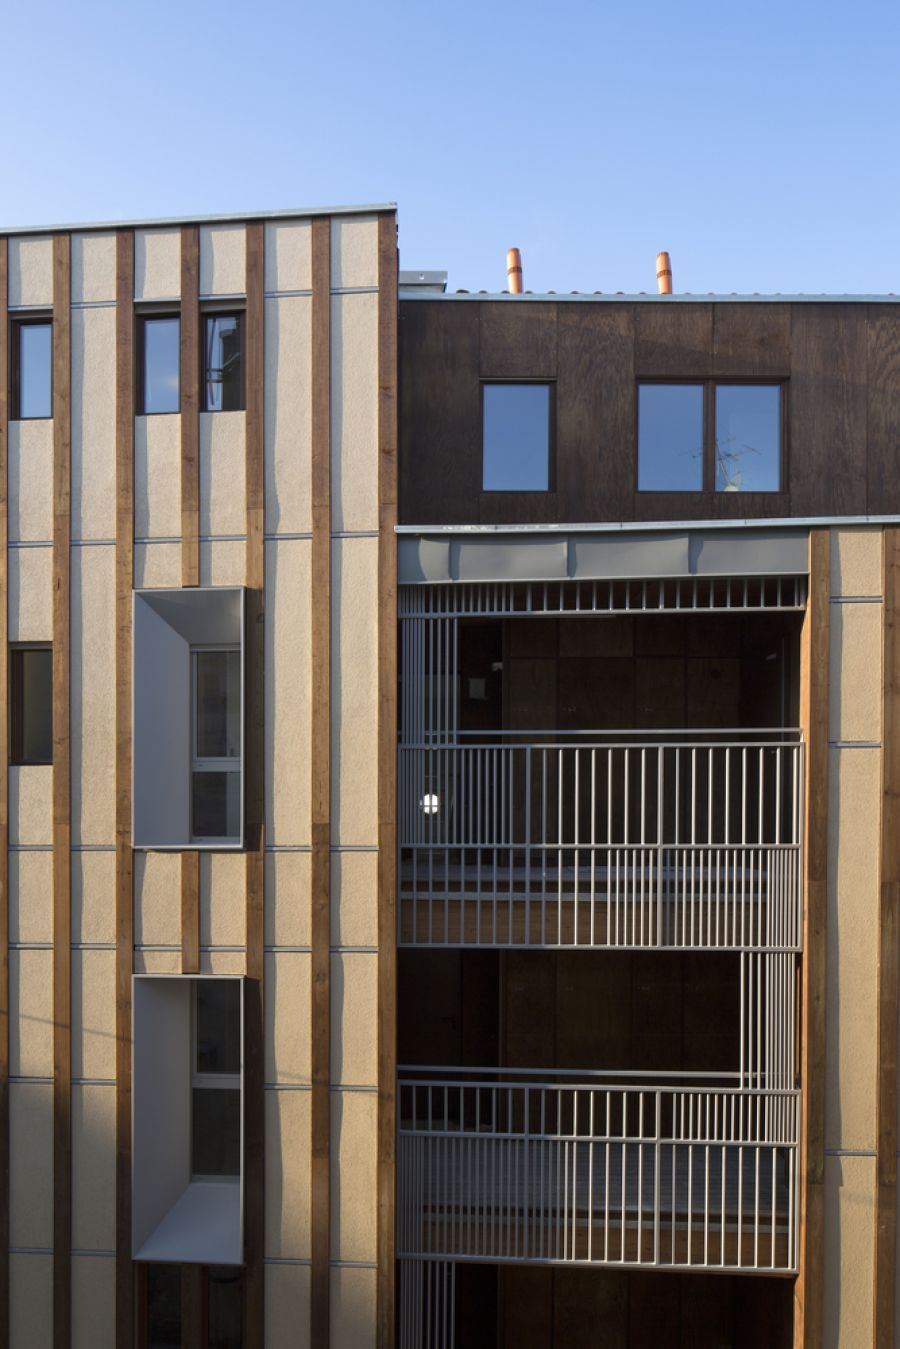 16 logements à Bordeaux - Arch. whyarchitecture - Photo : Benoit Bost